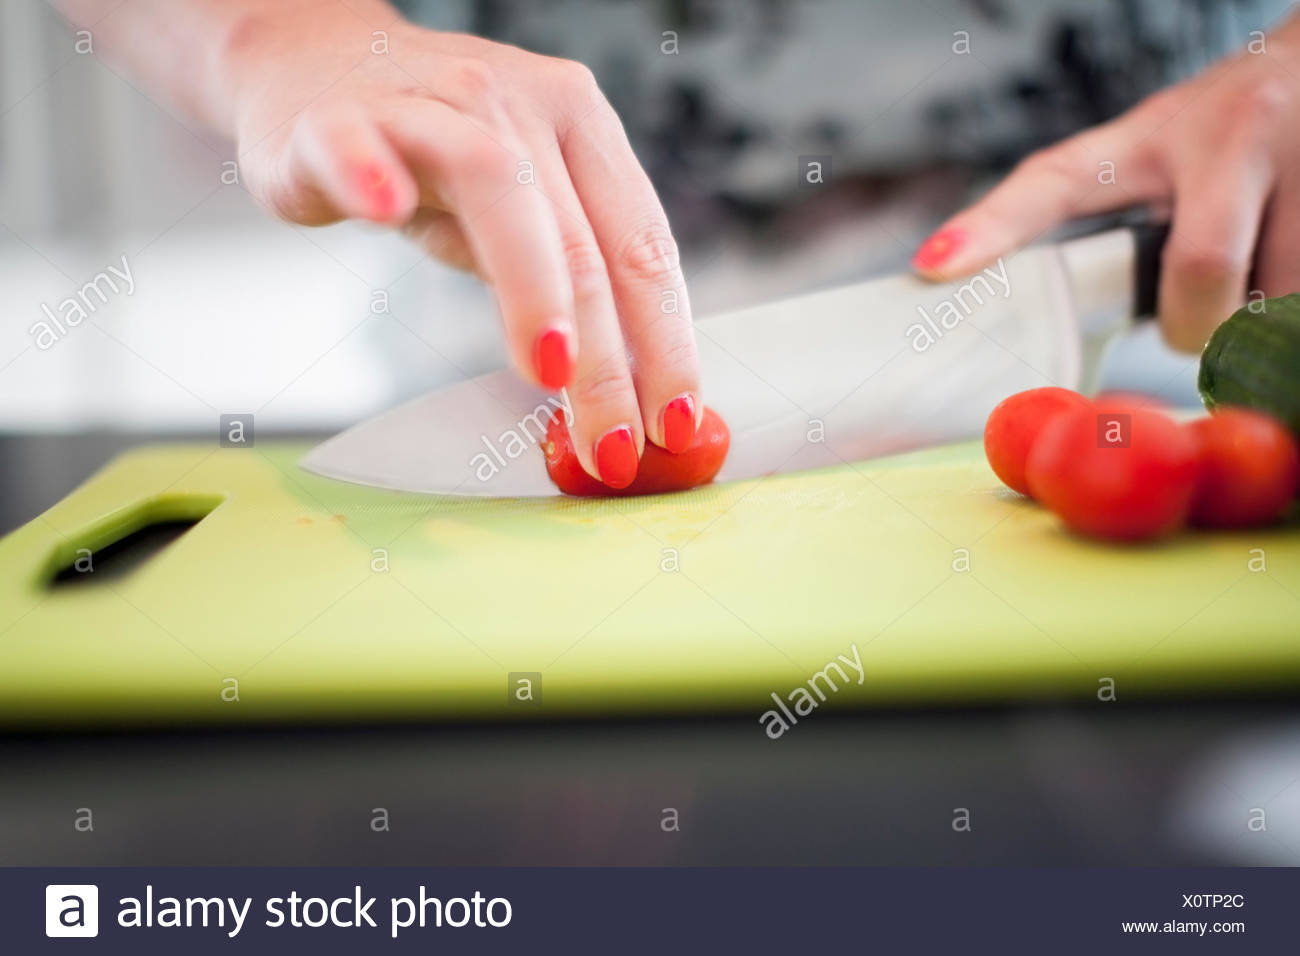 Woman cutting tomatoes on cutting board - Stock Image